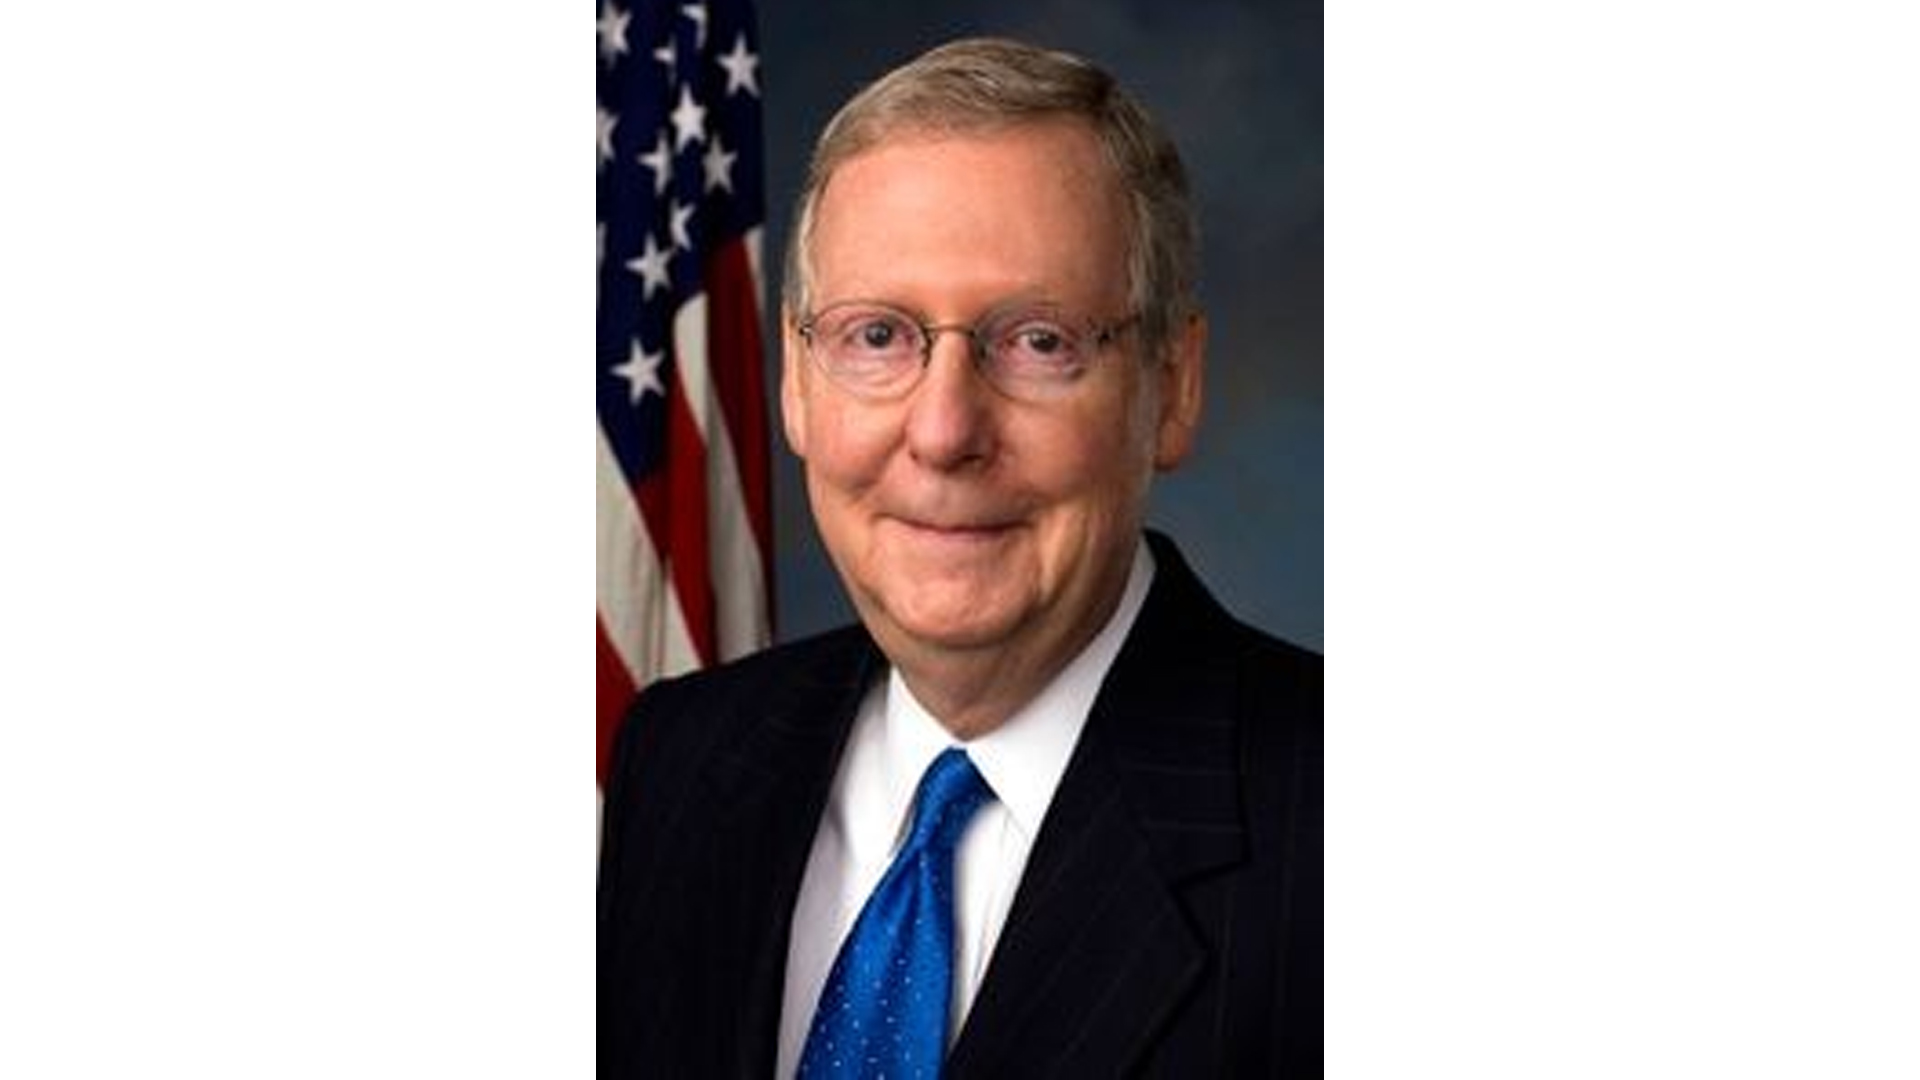 McConnell says he'd support Trump if he wins 2024 nomination – WNKY 40 News